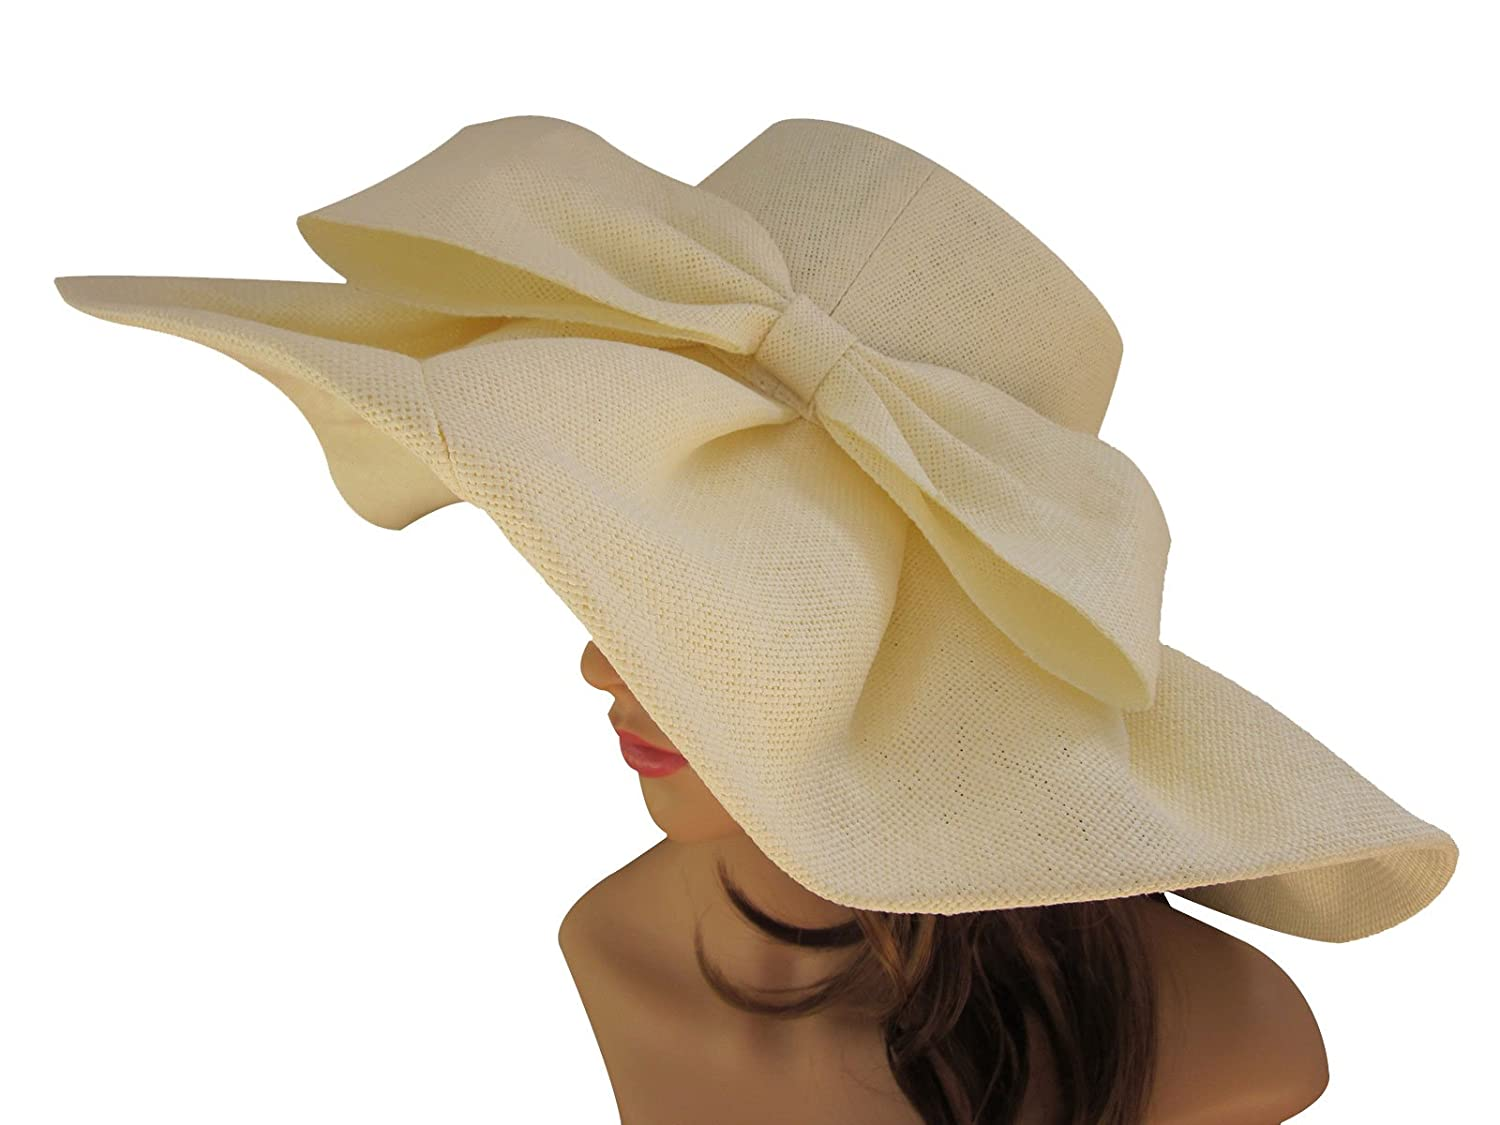 Tea Party Hats – Victorian to 1950s Linen Summer Womens Kentucky Derby Wide Brim Sun Hat Wedding Church Sea Beach A047 $17.99 AT vintagedancer.com